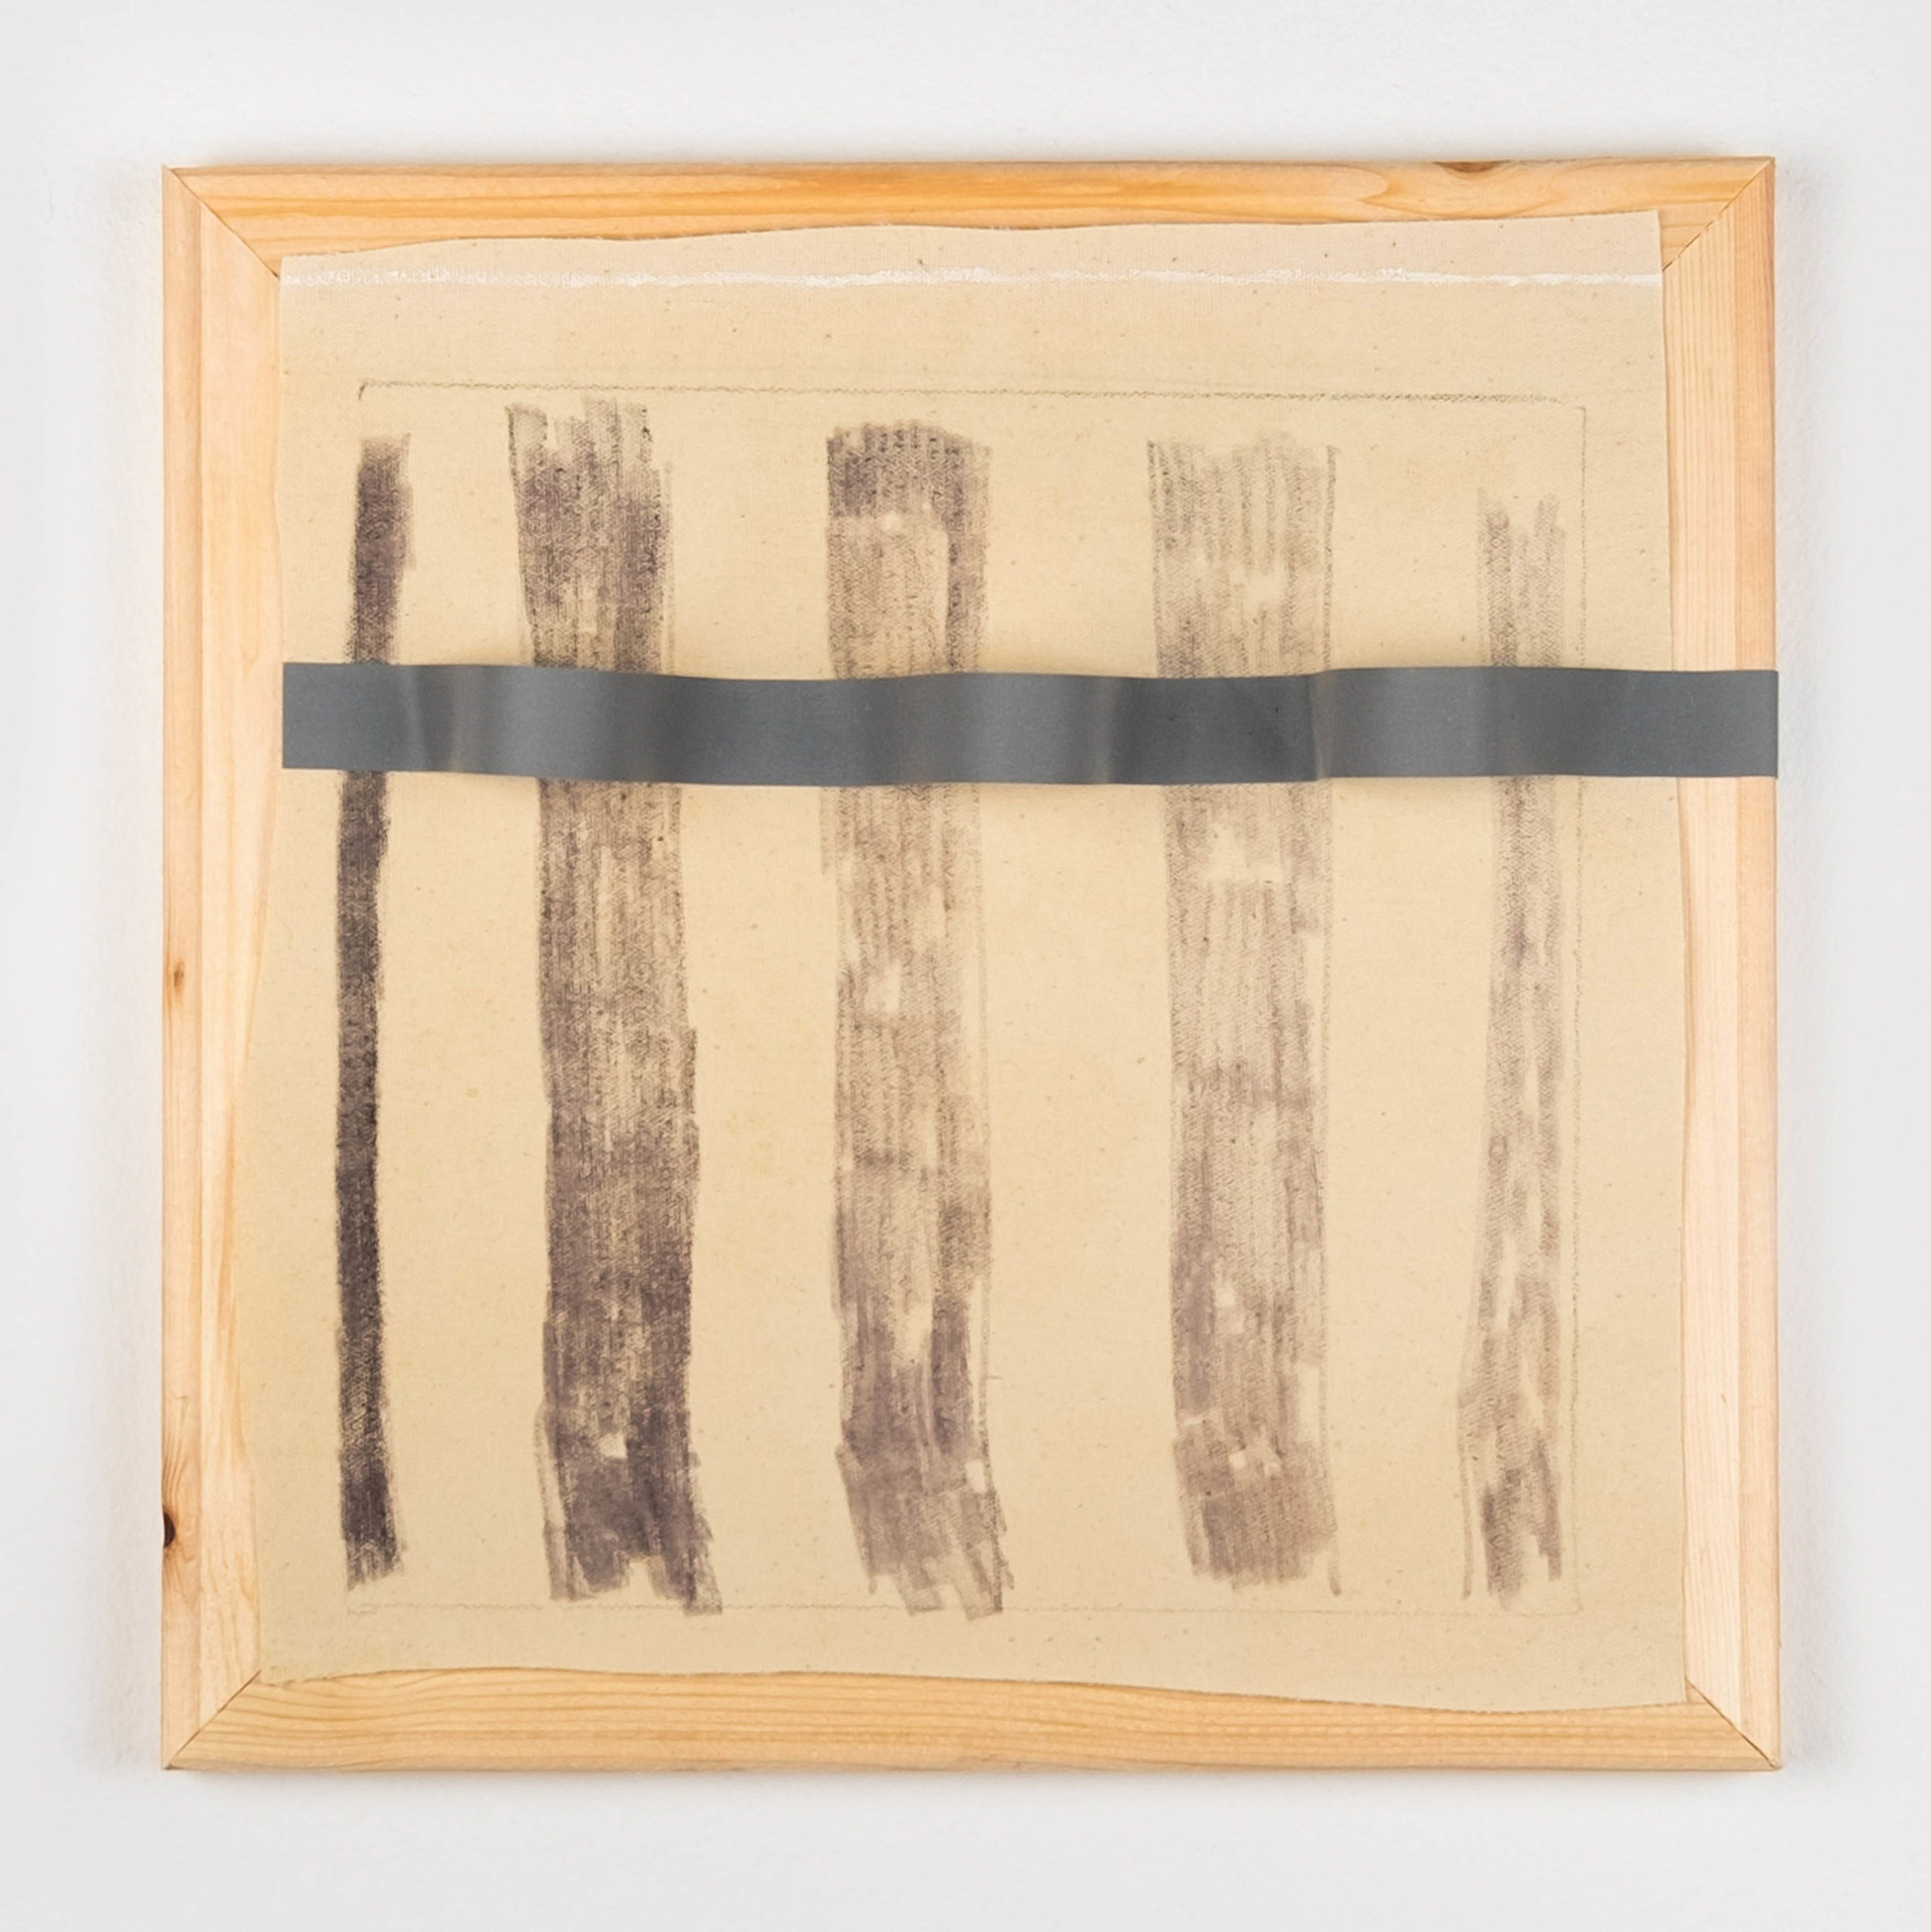 RUNNING OUT OF INK  2019  Oil and ink on canvas, reflective ribbon, wood  30 x 30 x 7cm